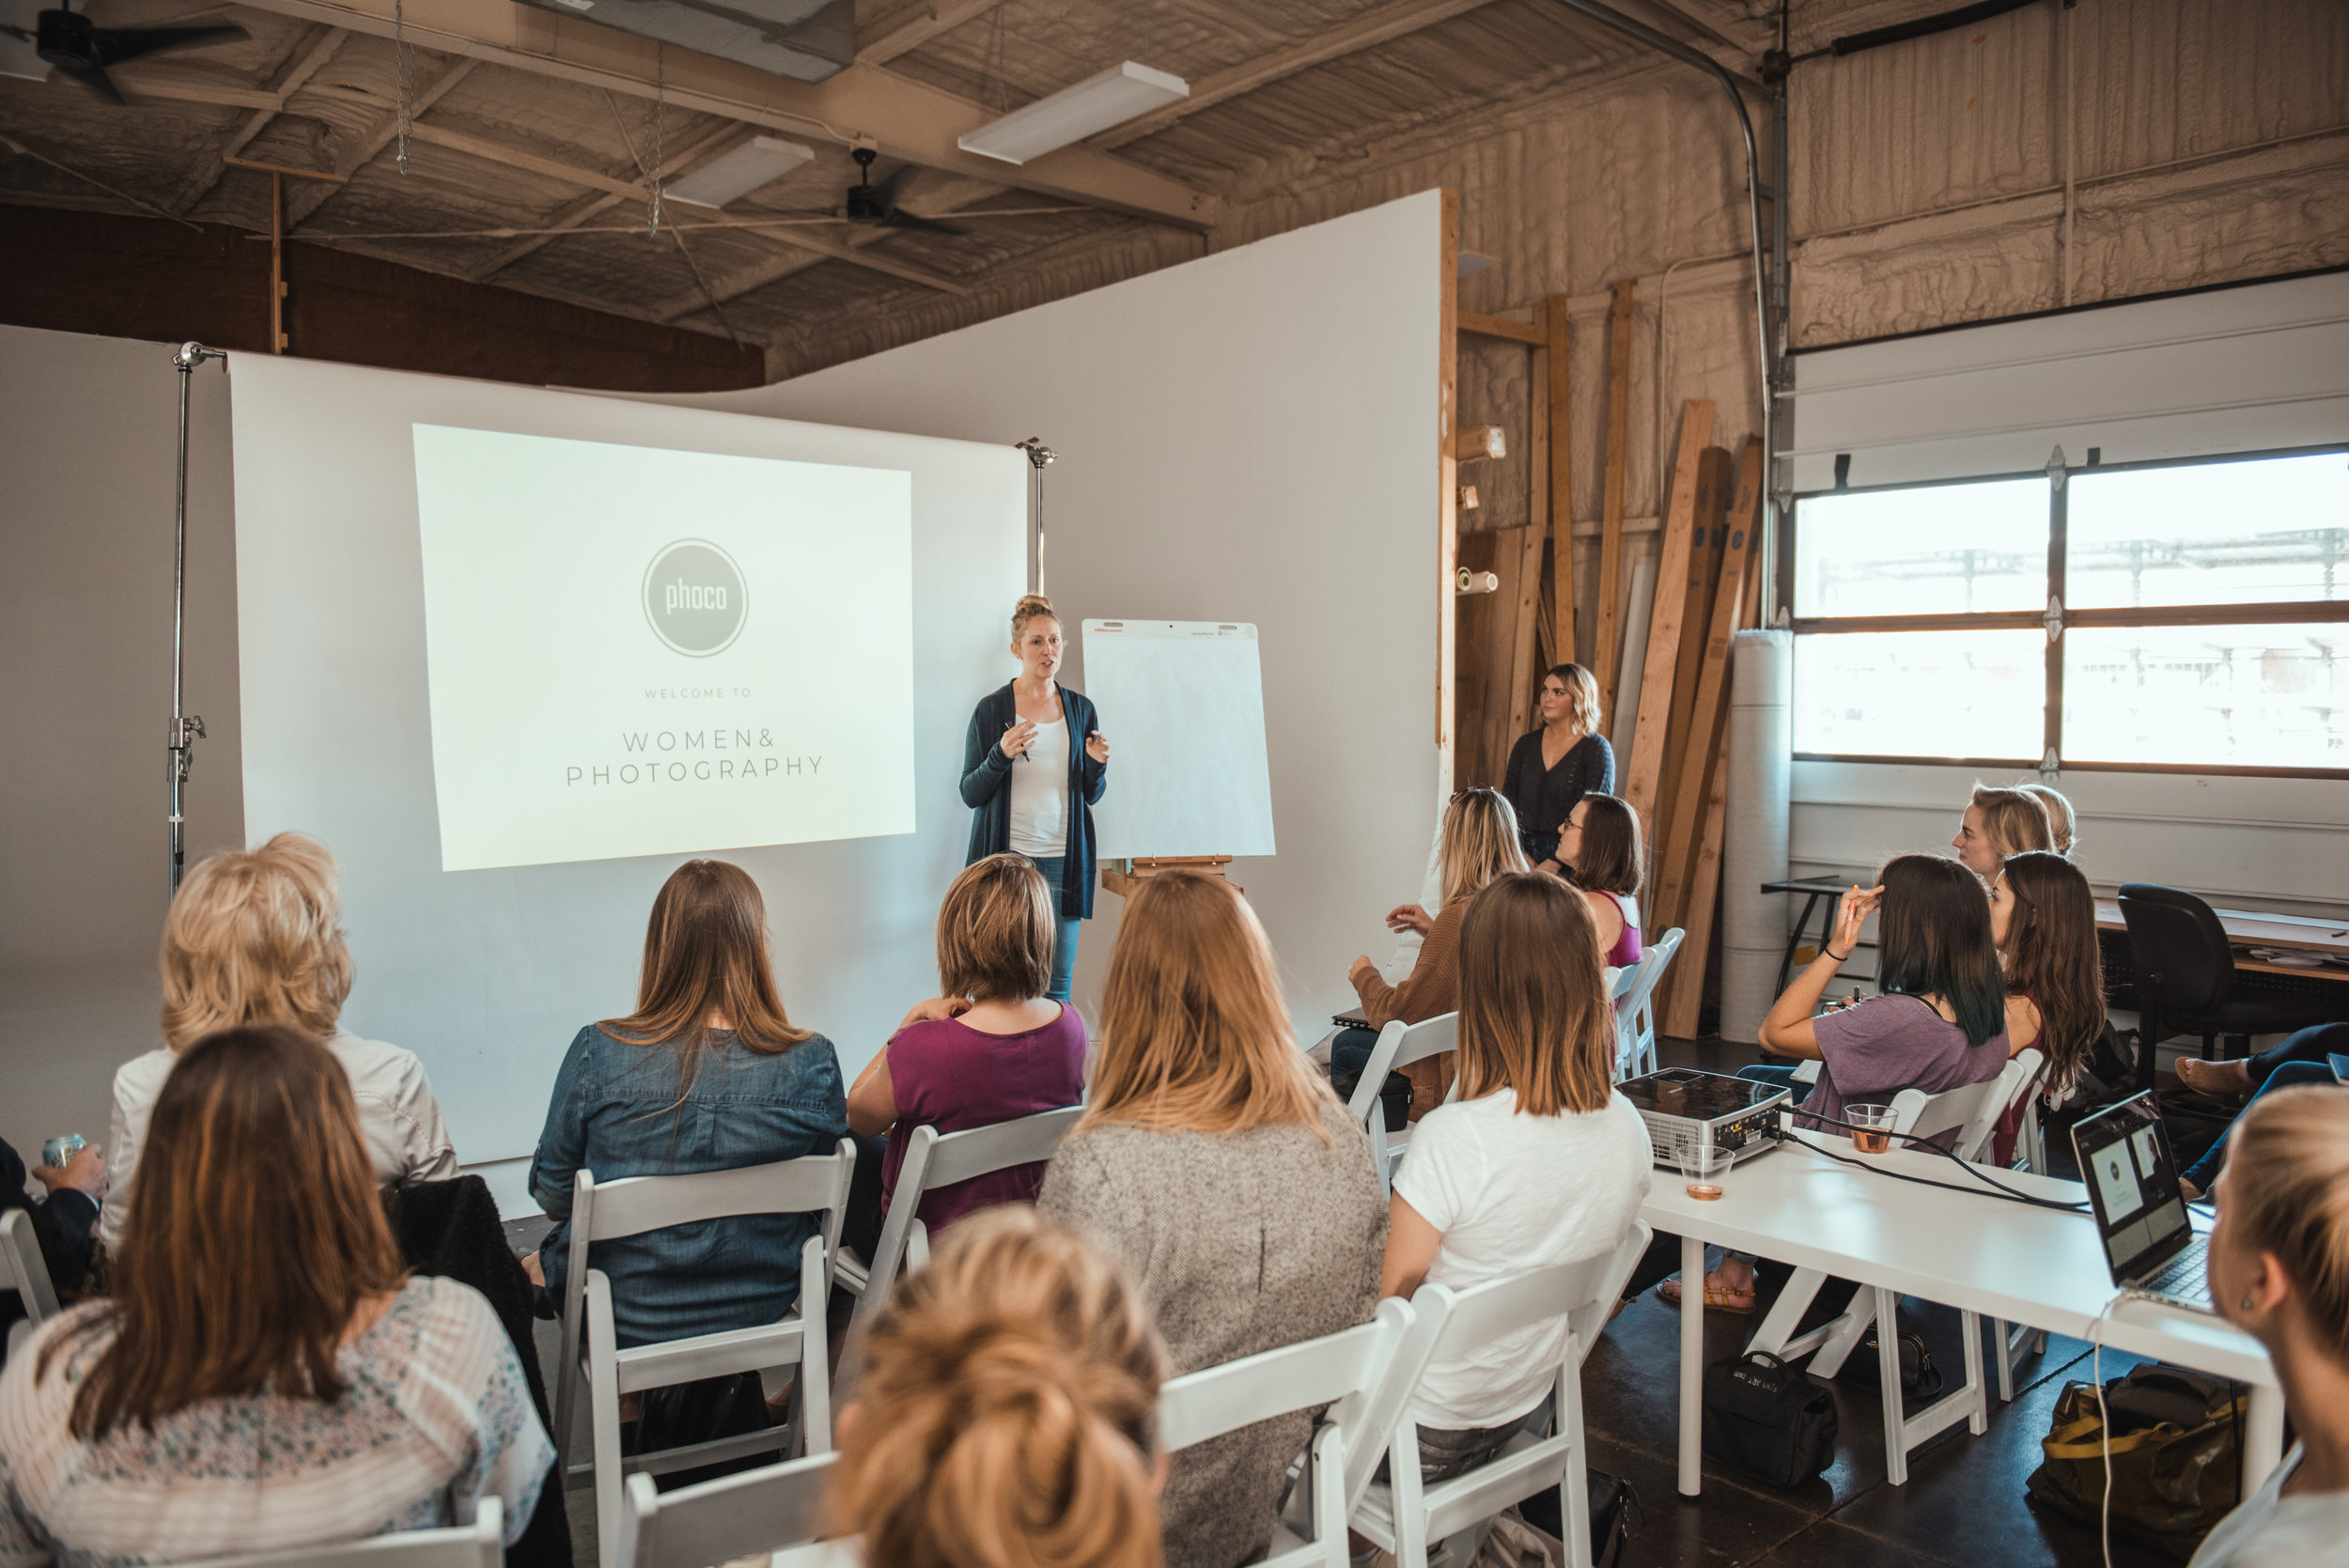 Workshops + Events - Our events are designed with intention to create opportunity for connection, education, and wellbeing with other entrepreneurial and professional women.